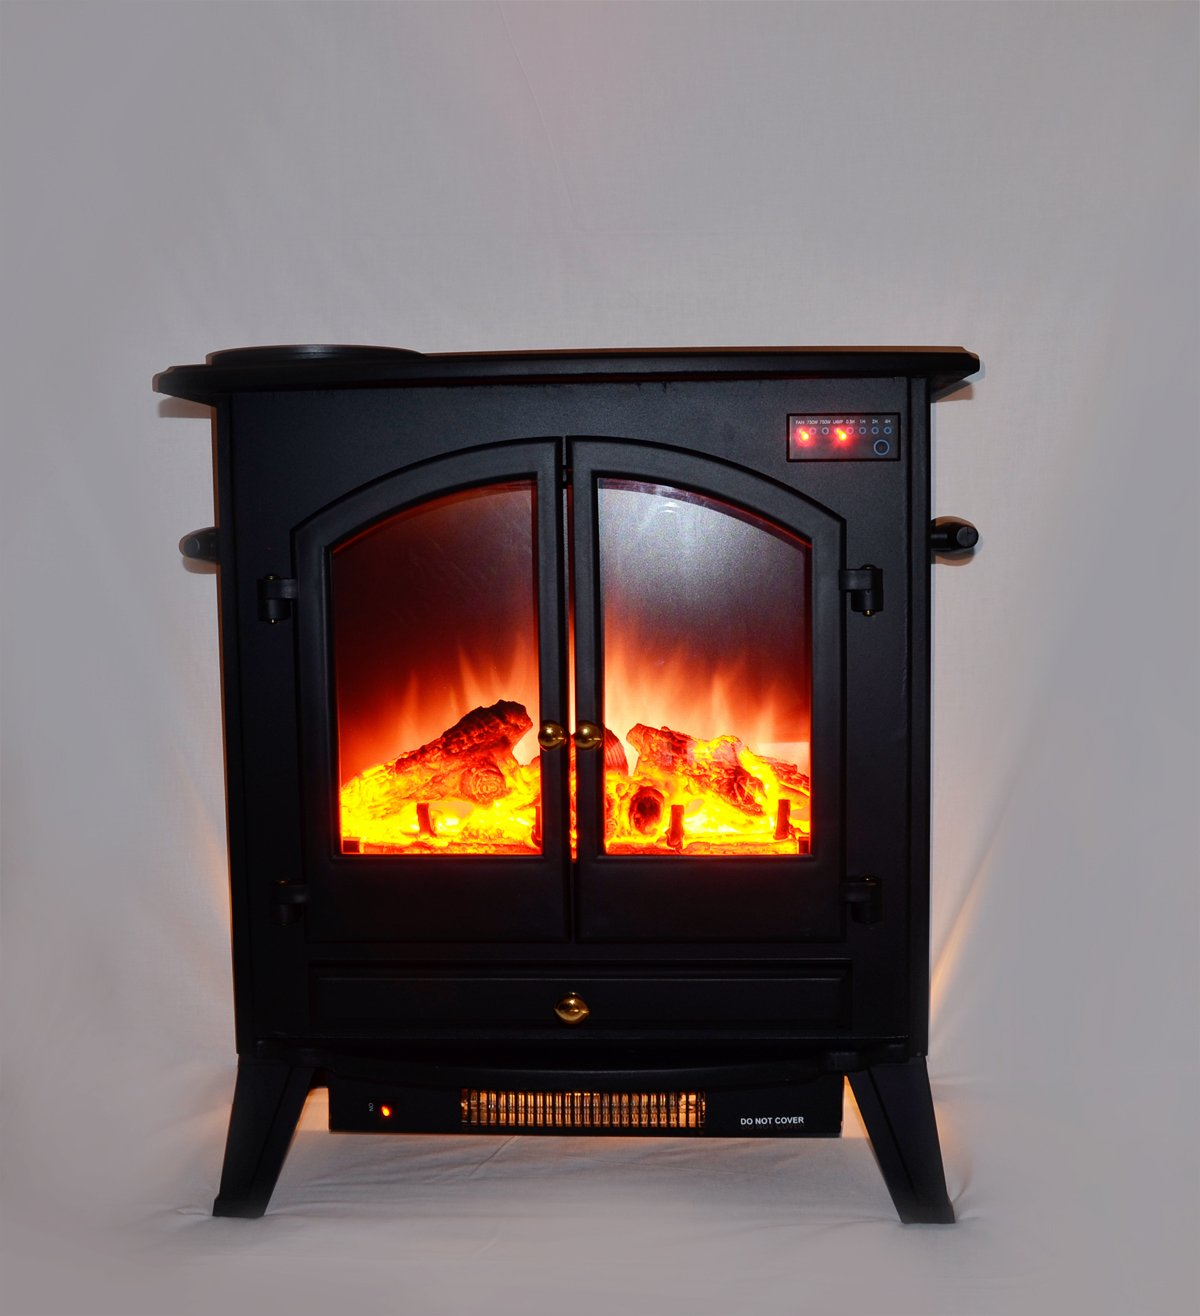 on electric sale fireplace cameron wayfair heat no keyword